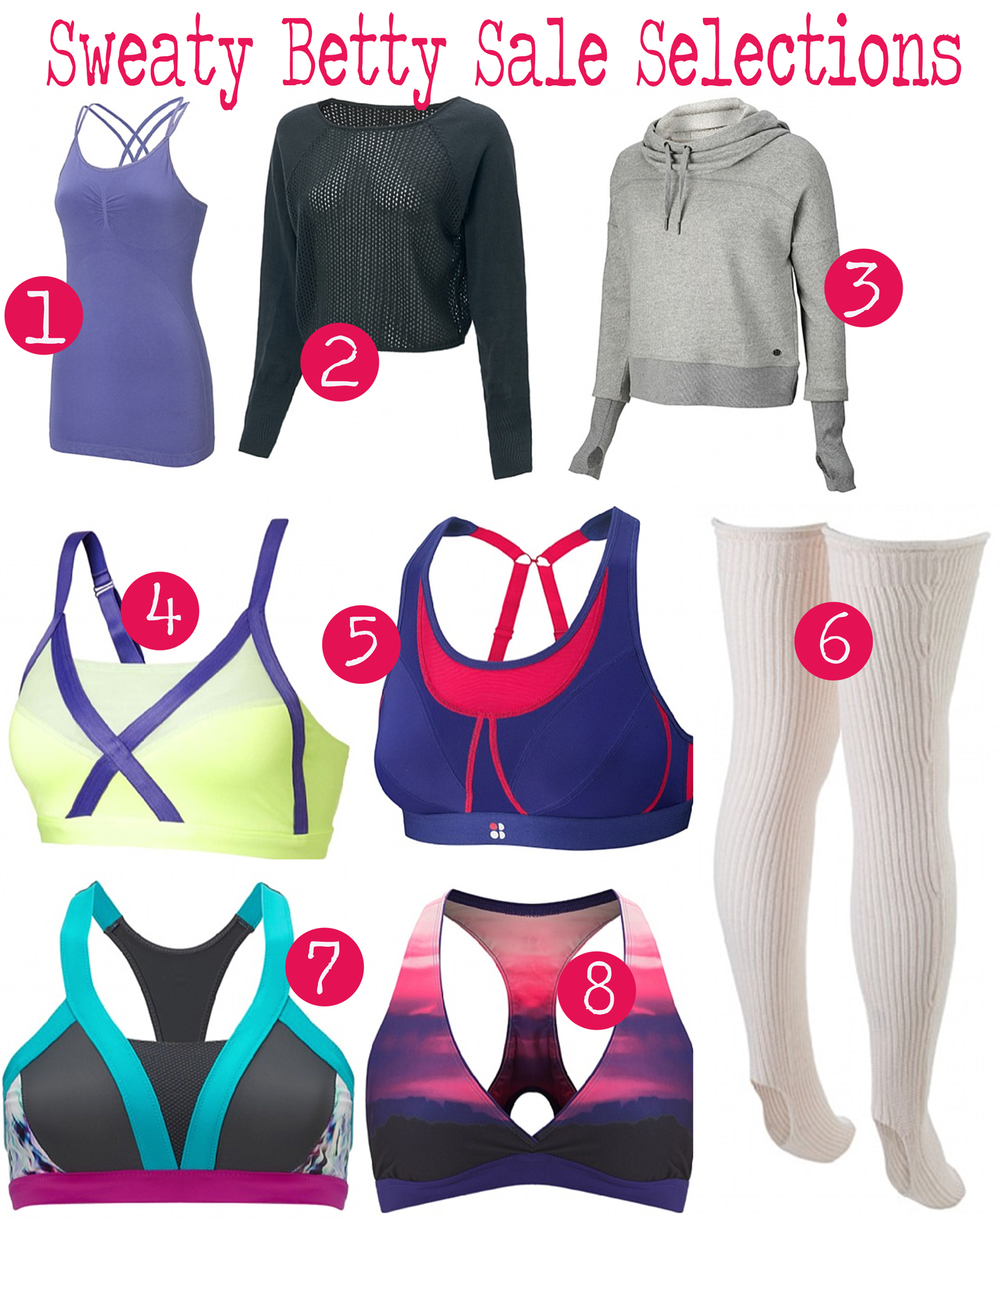 Sweaty Betty Sale Selections!